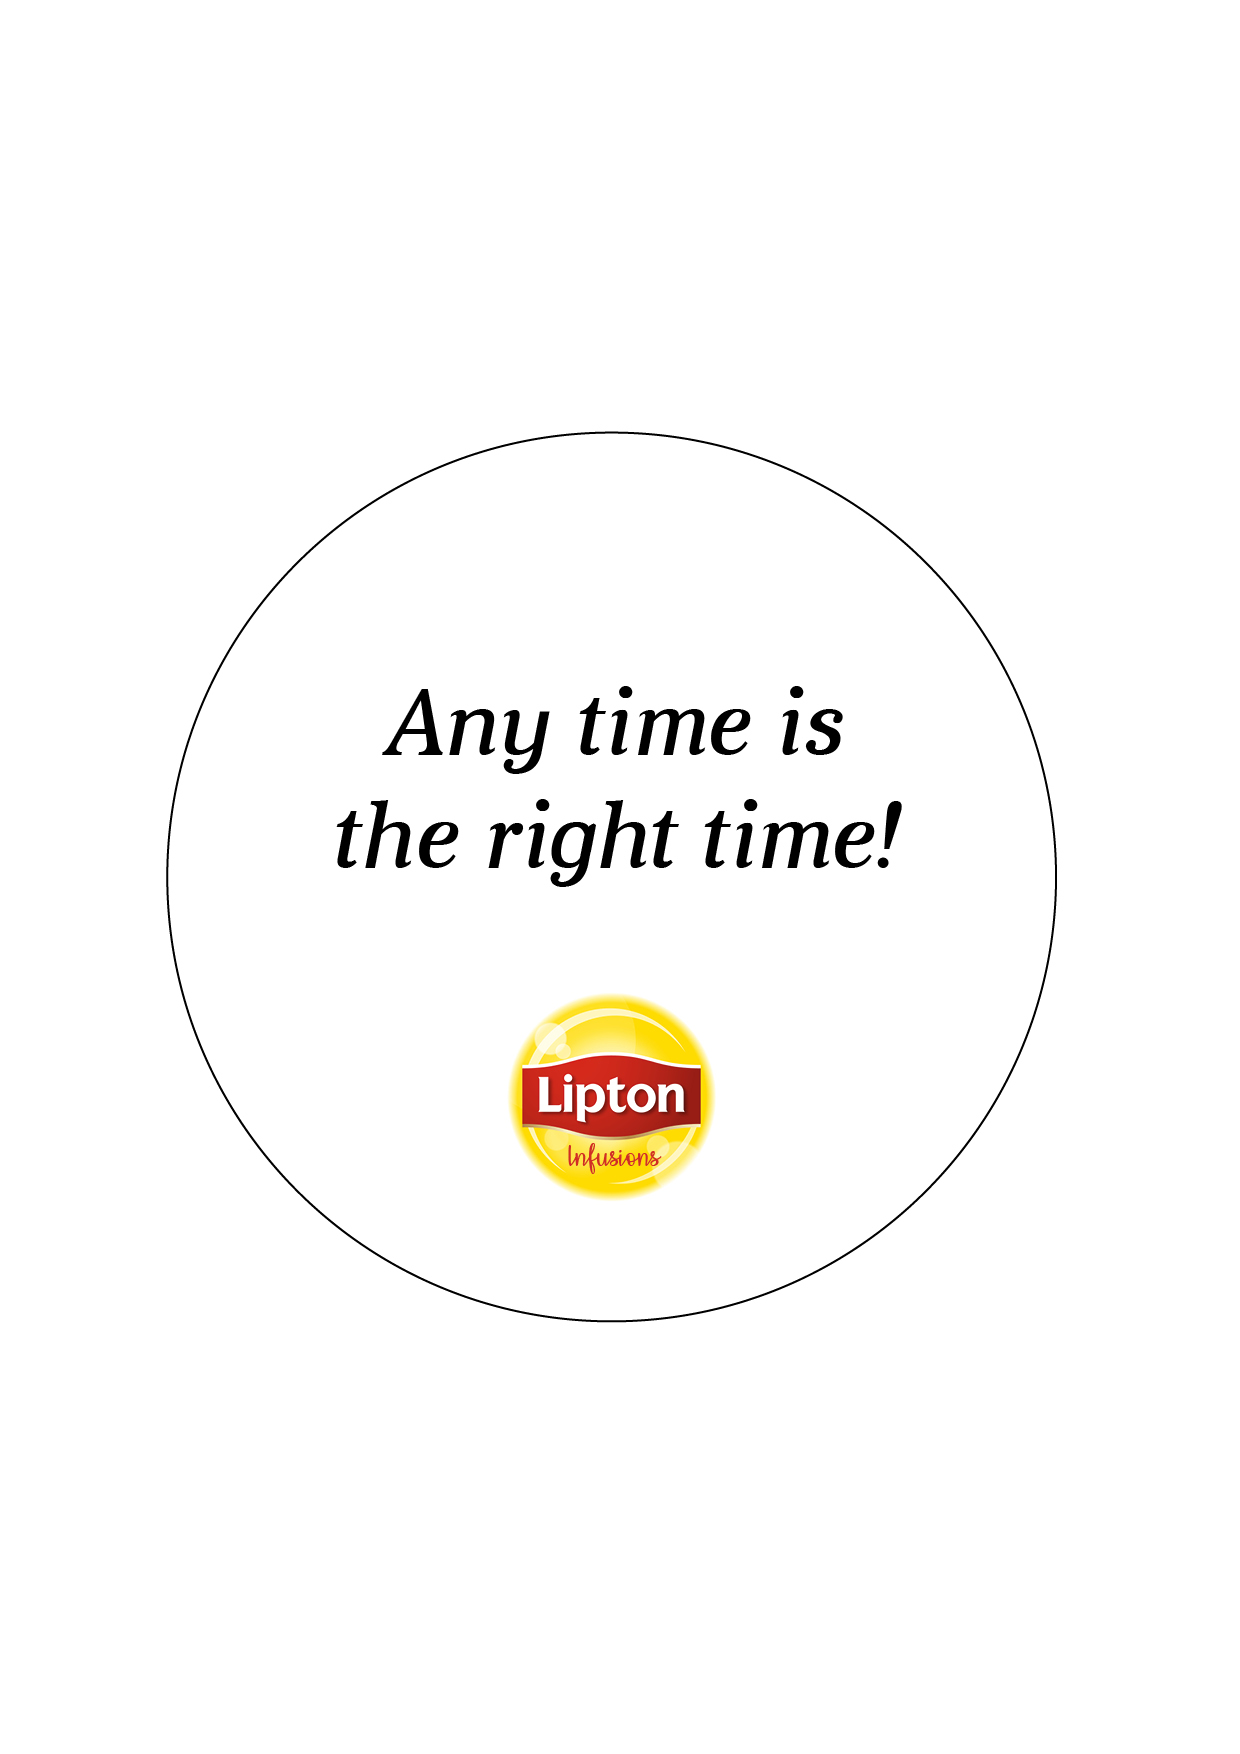 lipton website.jpg